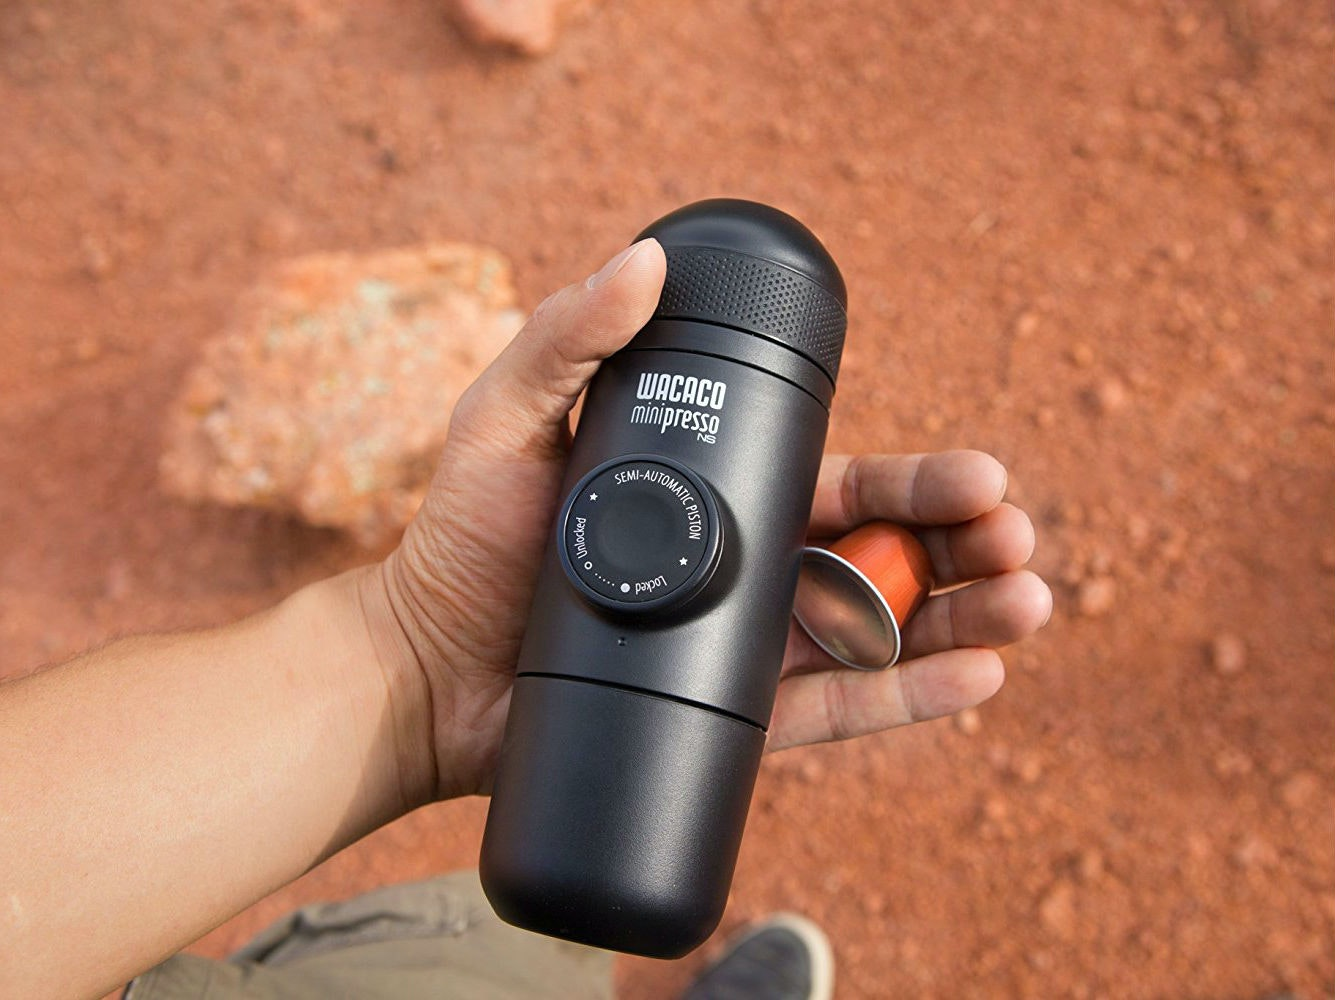 Thisperfect espressomaker for camping trips